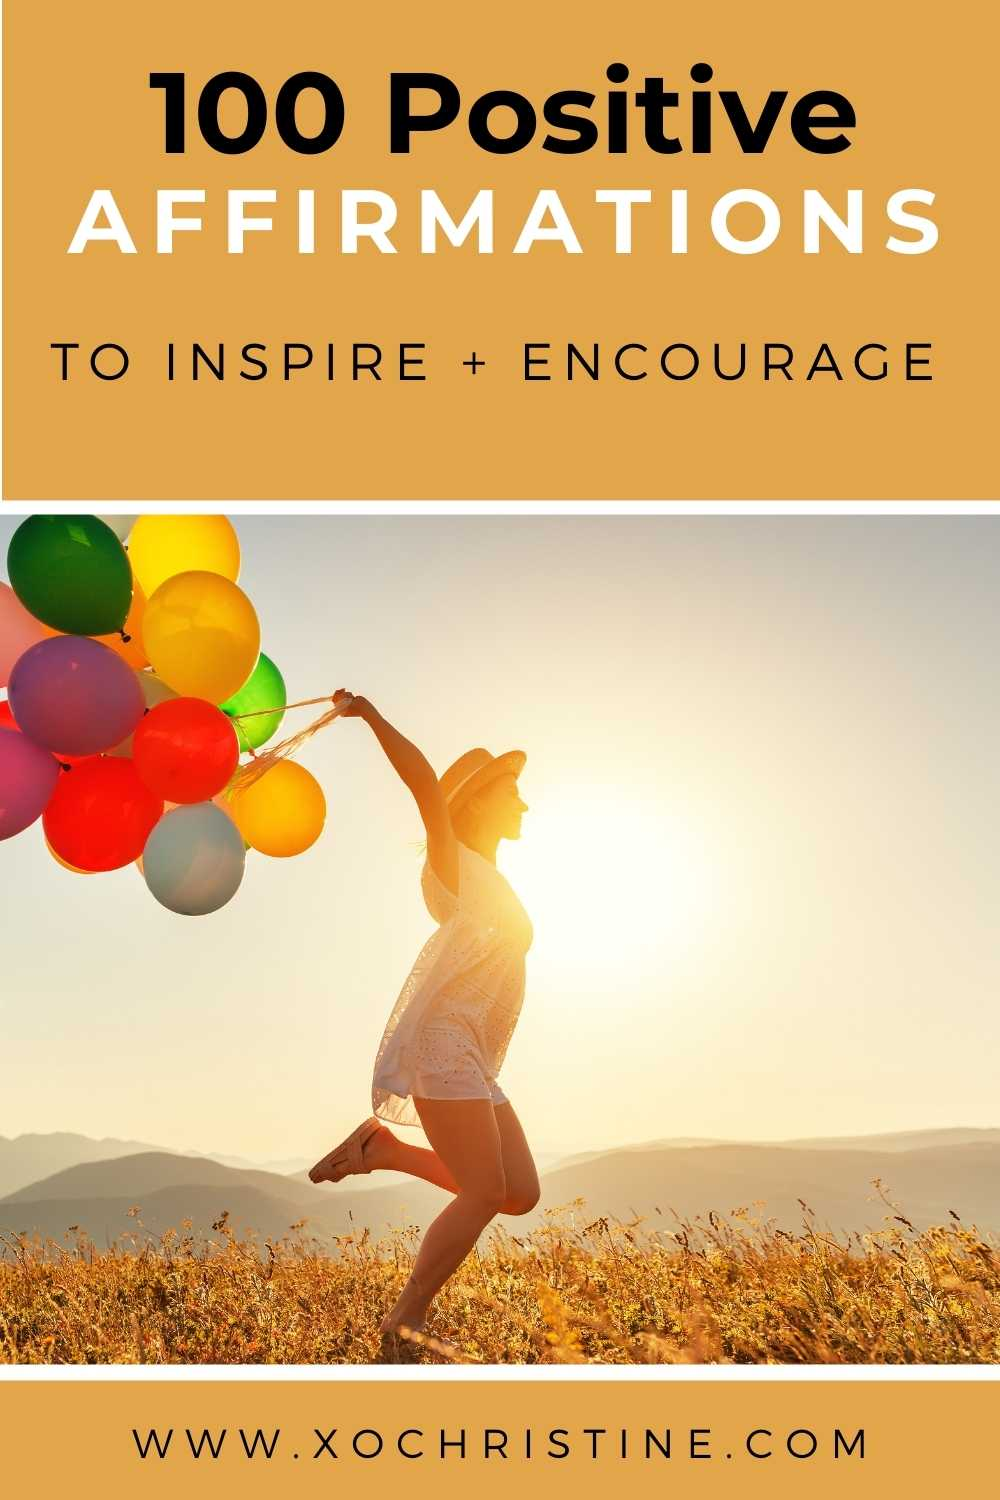 100 positive morning affirmations to start the day off right!